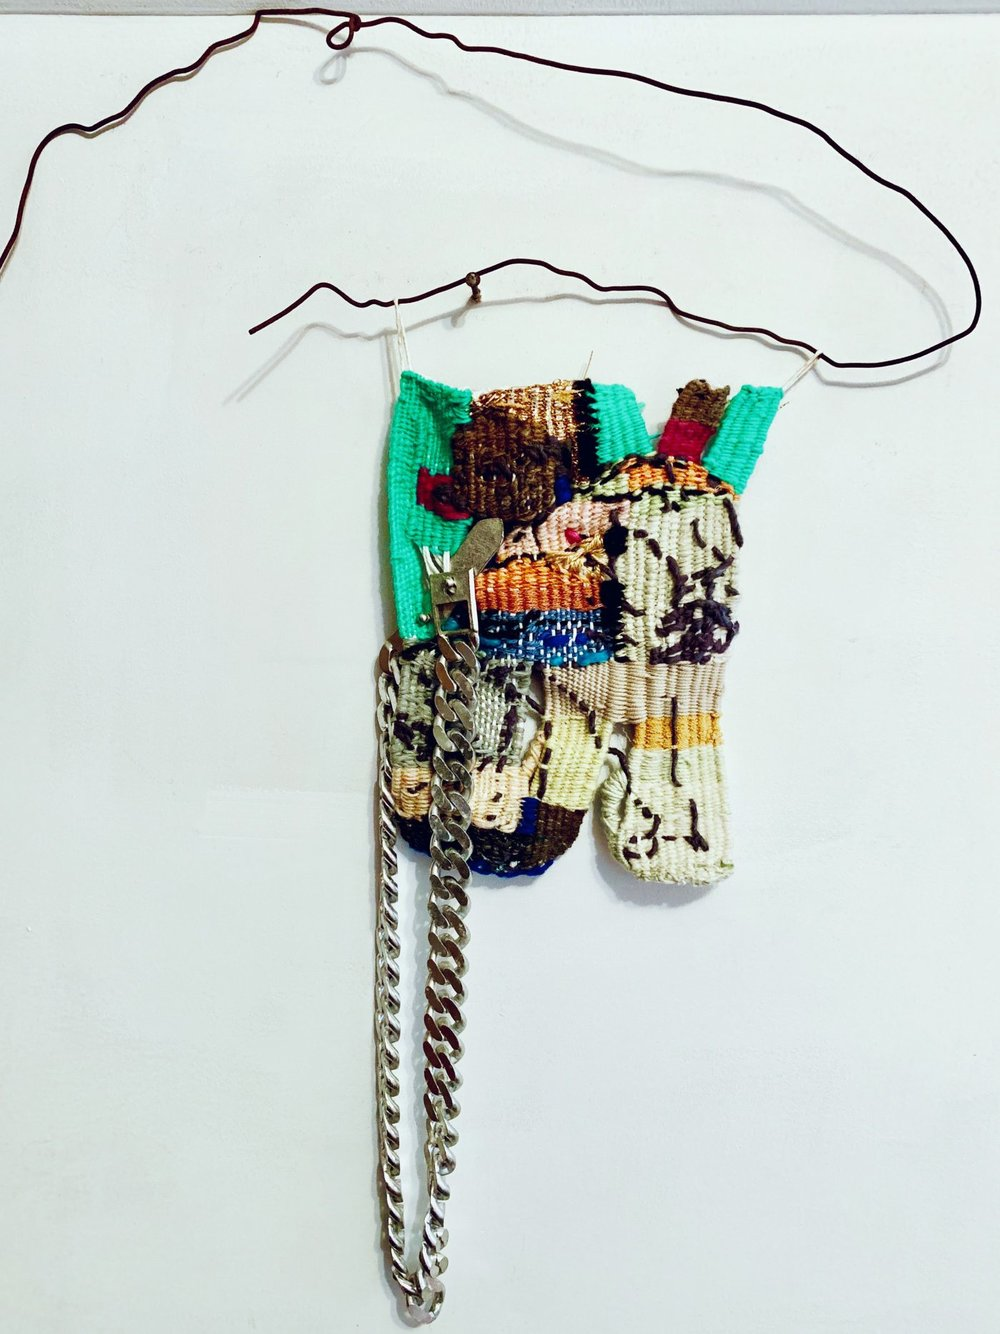 Candace Hill Montgomery (American, born 1945) Migrant Kids Dying & Lock Um Up & All That Wall Space, 2018 Hand spun wool, silk, gold lurex, linen, steel chain Wire (hanger) 12 x 8 inches (without hanger)